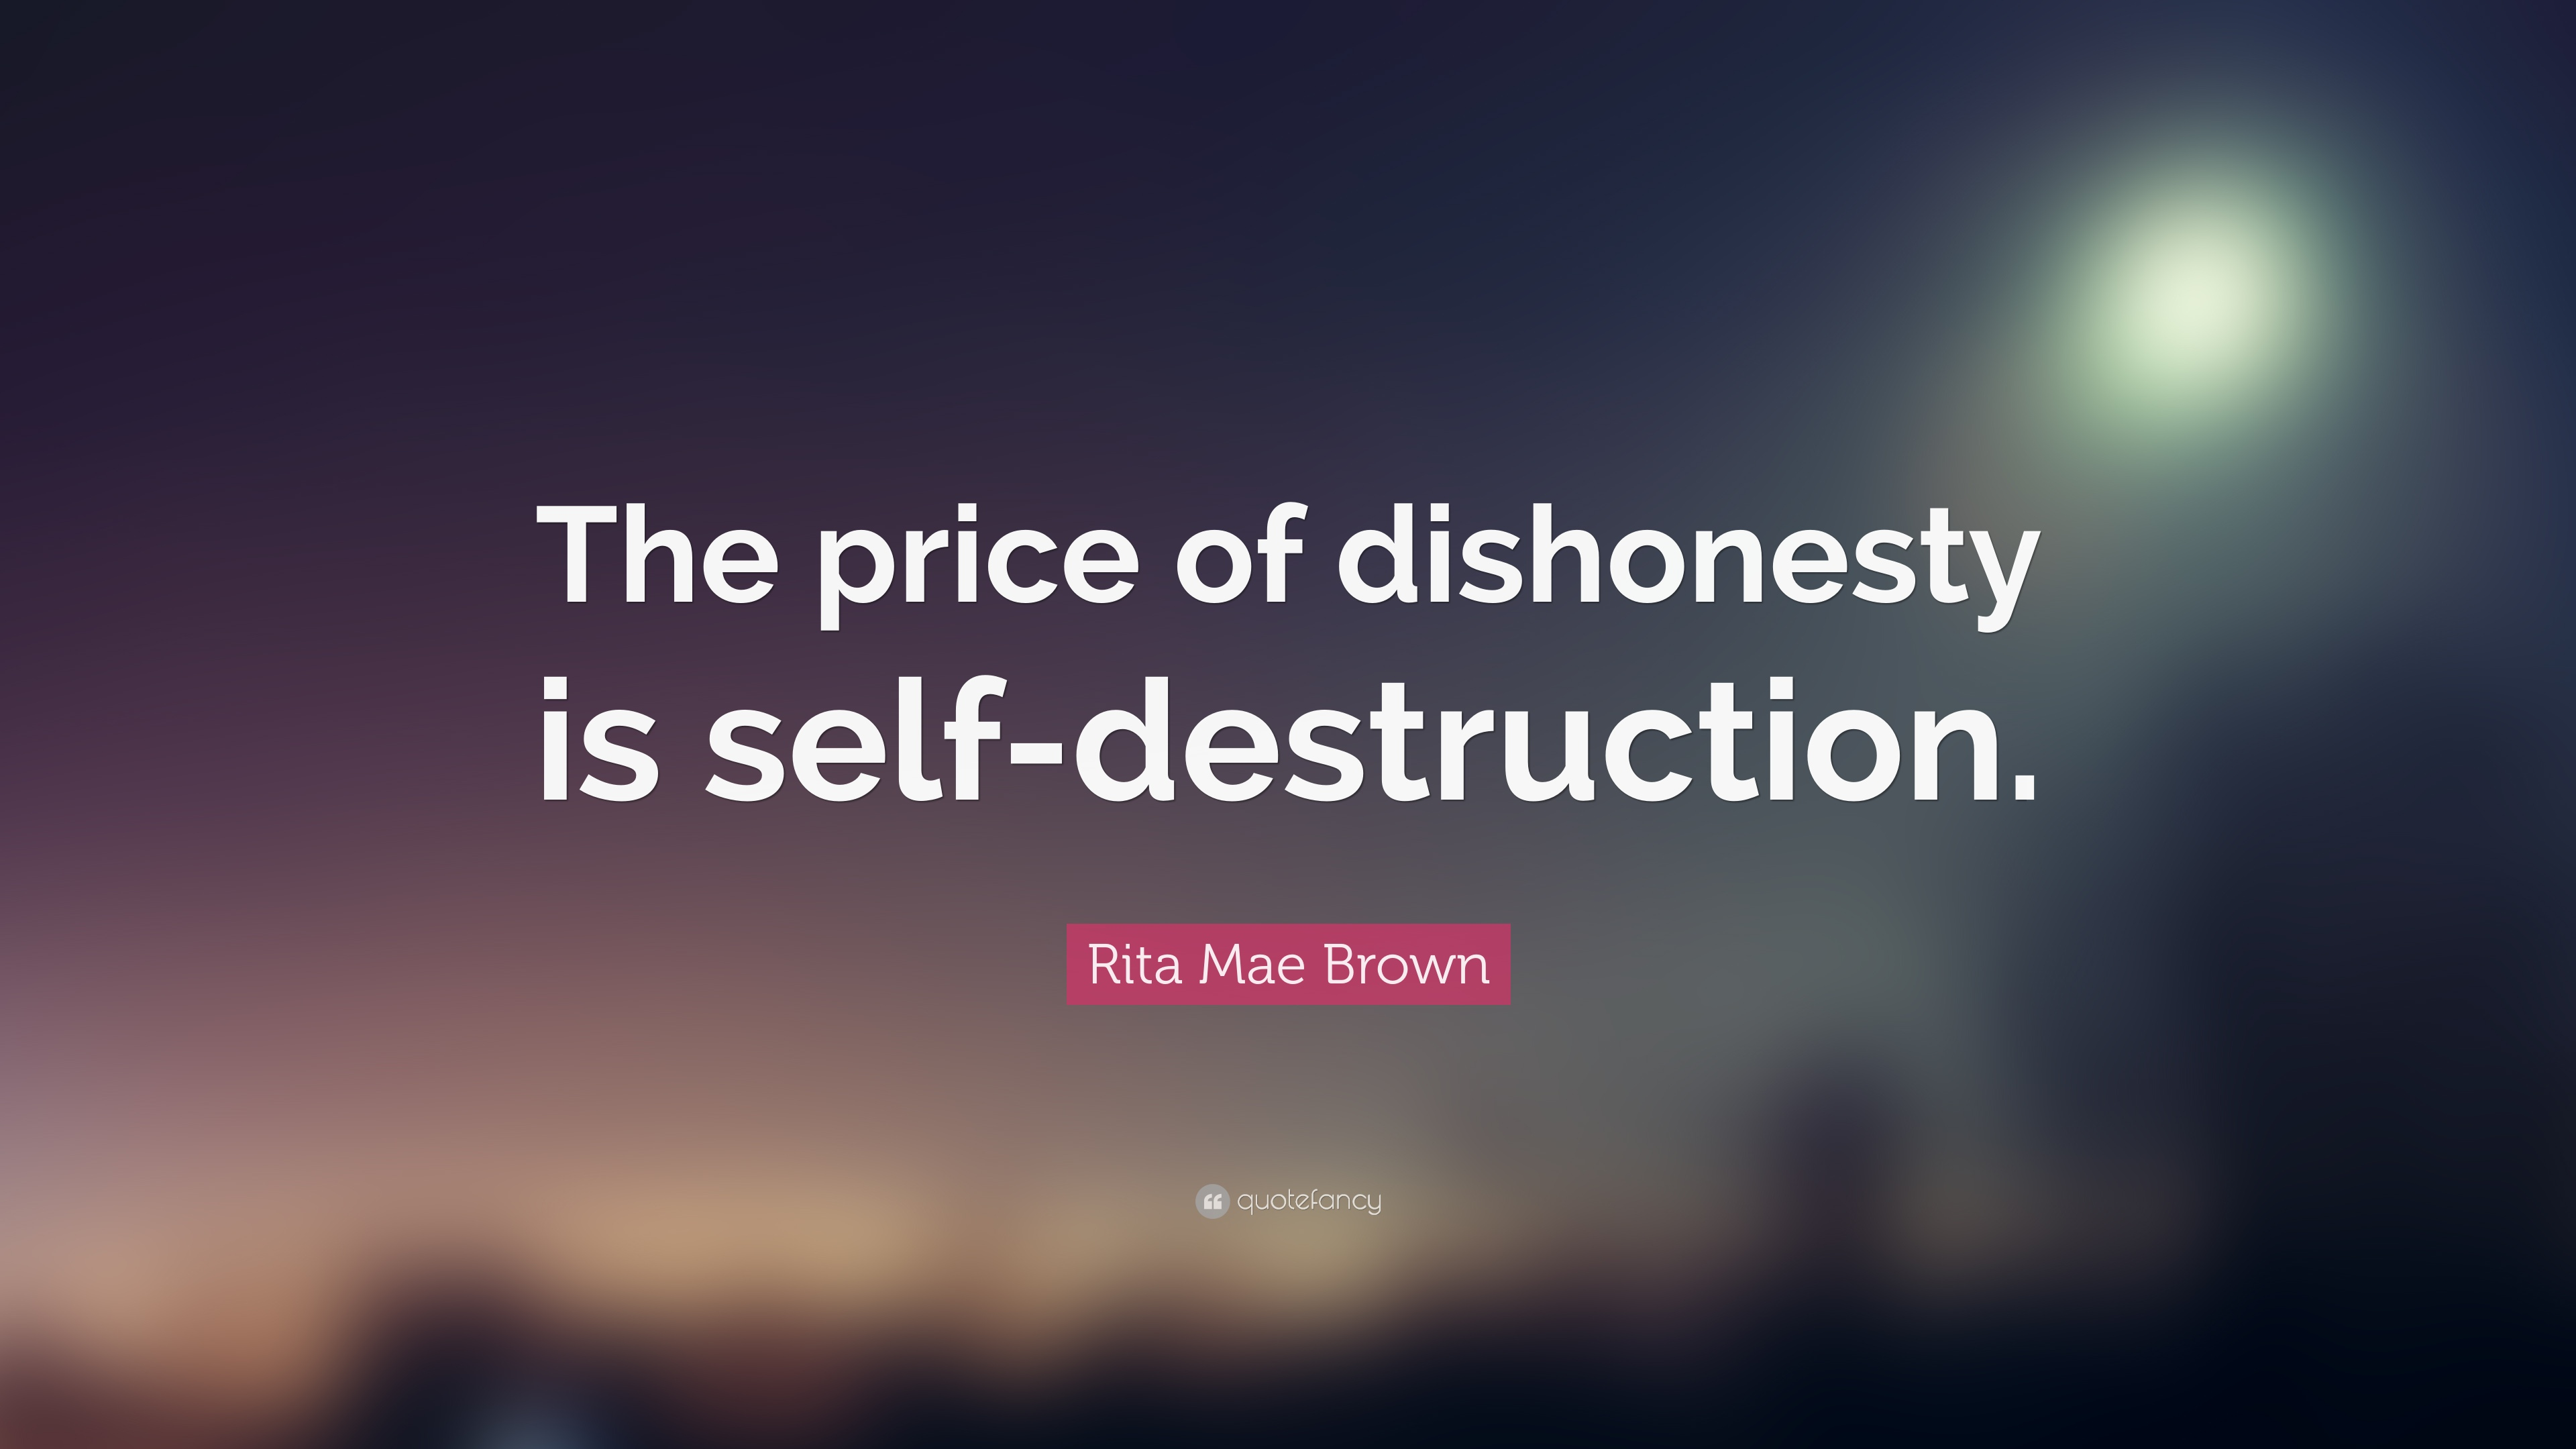 Rita Mae Brown Quotes (100 Wallpapers)